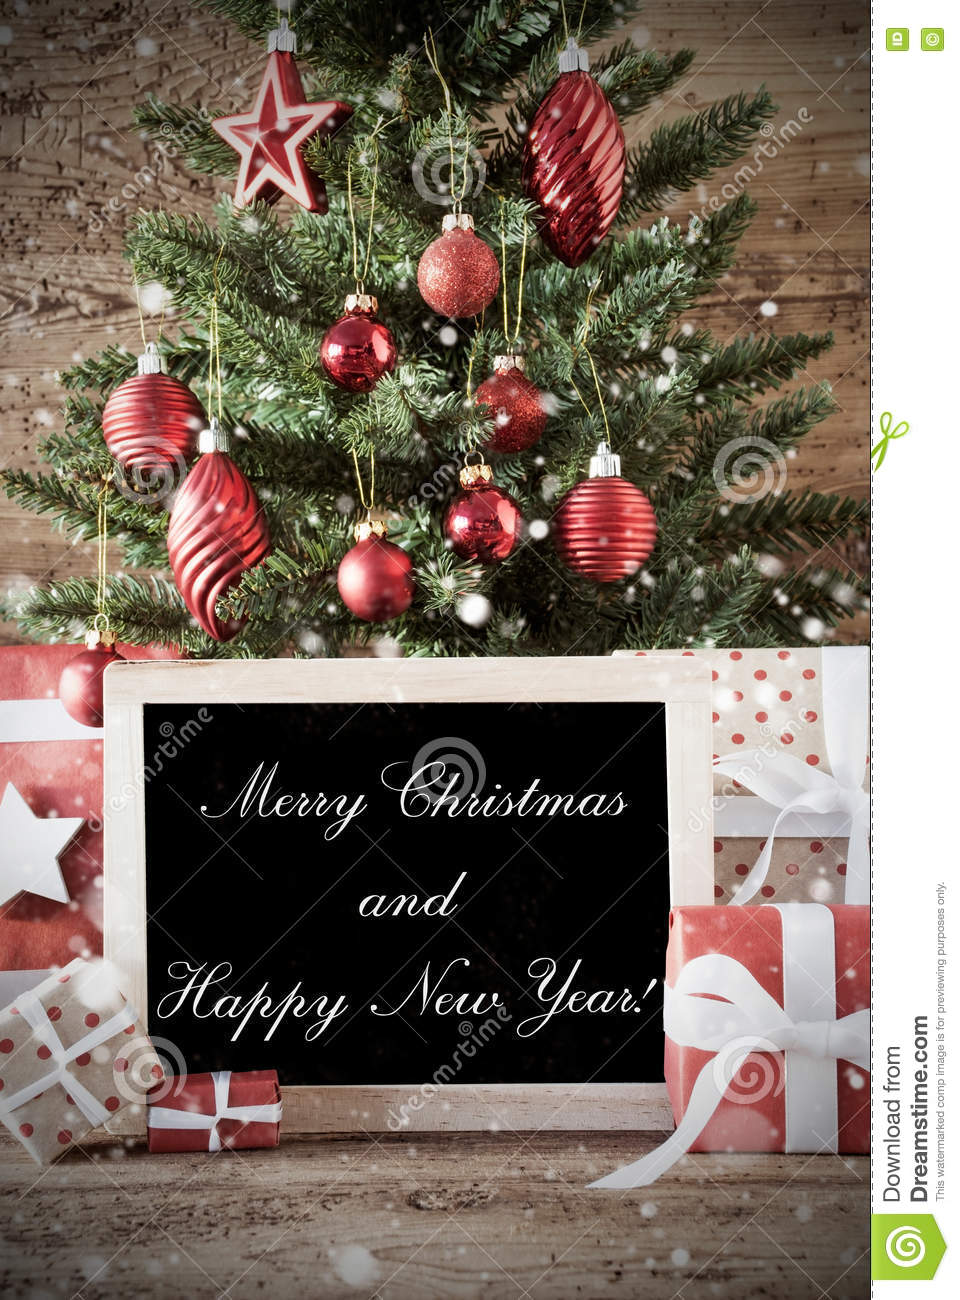 Nostalgic tree with merry christmas and happy new year stock image nostalgic christmas card for seasons greetings christmas tree with balls gifts or presents in the front of wooden background chalkboard with english text m4hsunfo